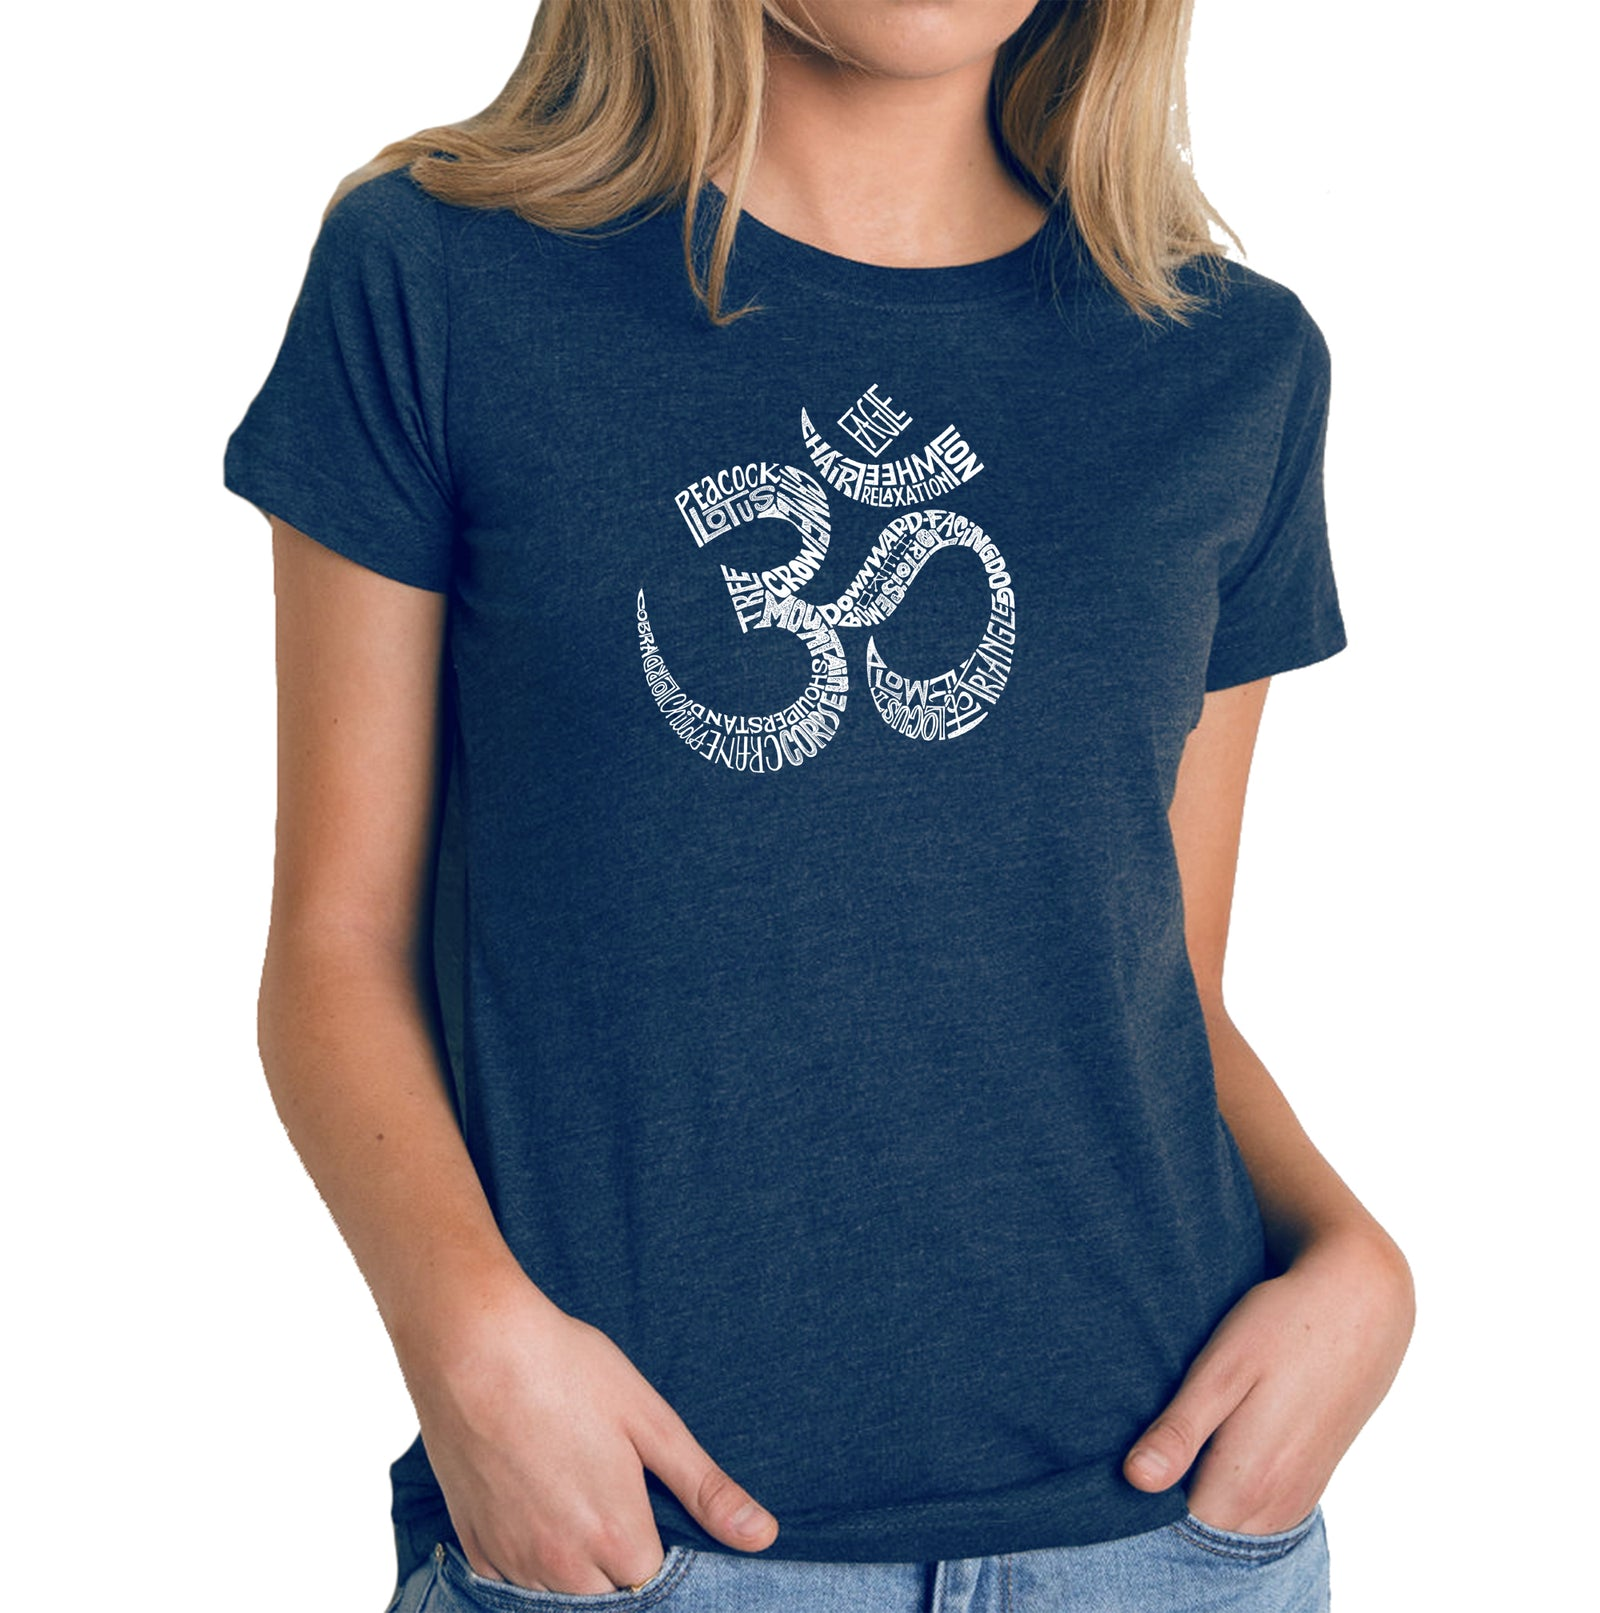 Women's Premium Blend Word Art T-shirt - Poses OM